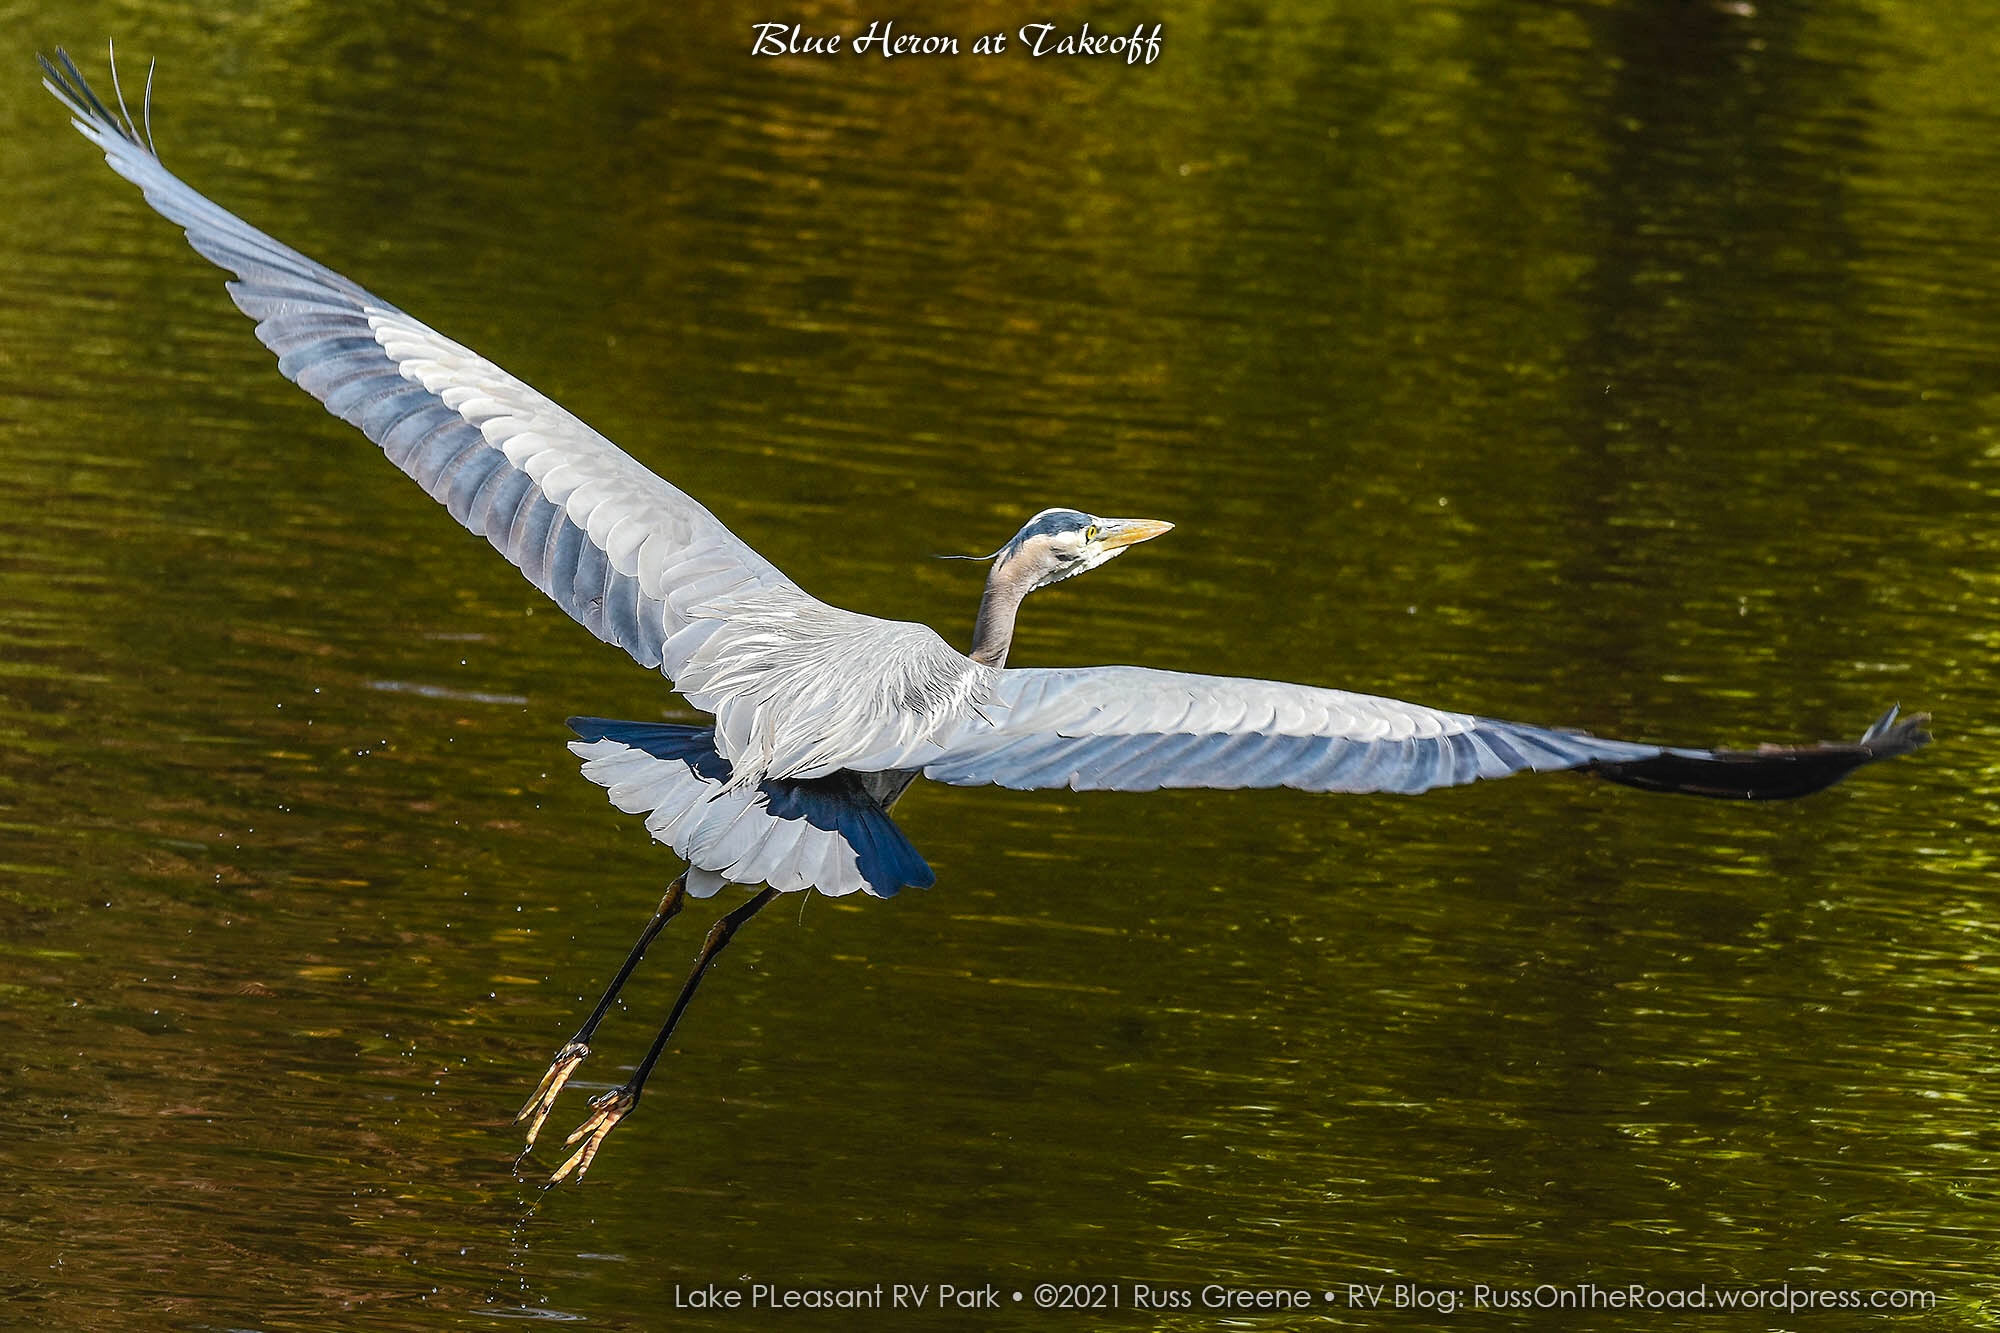 A great blue heron at takeoff.